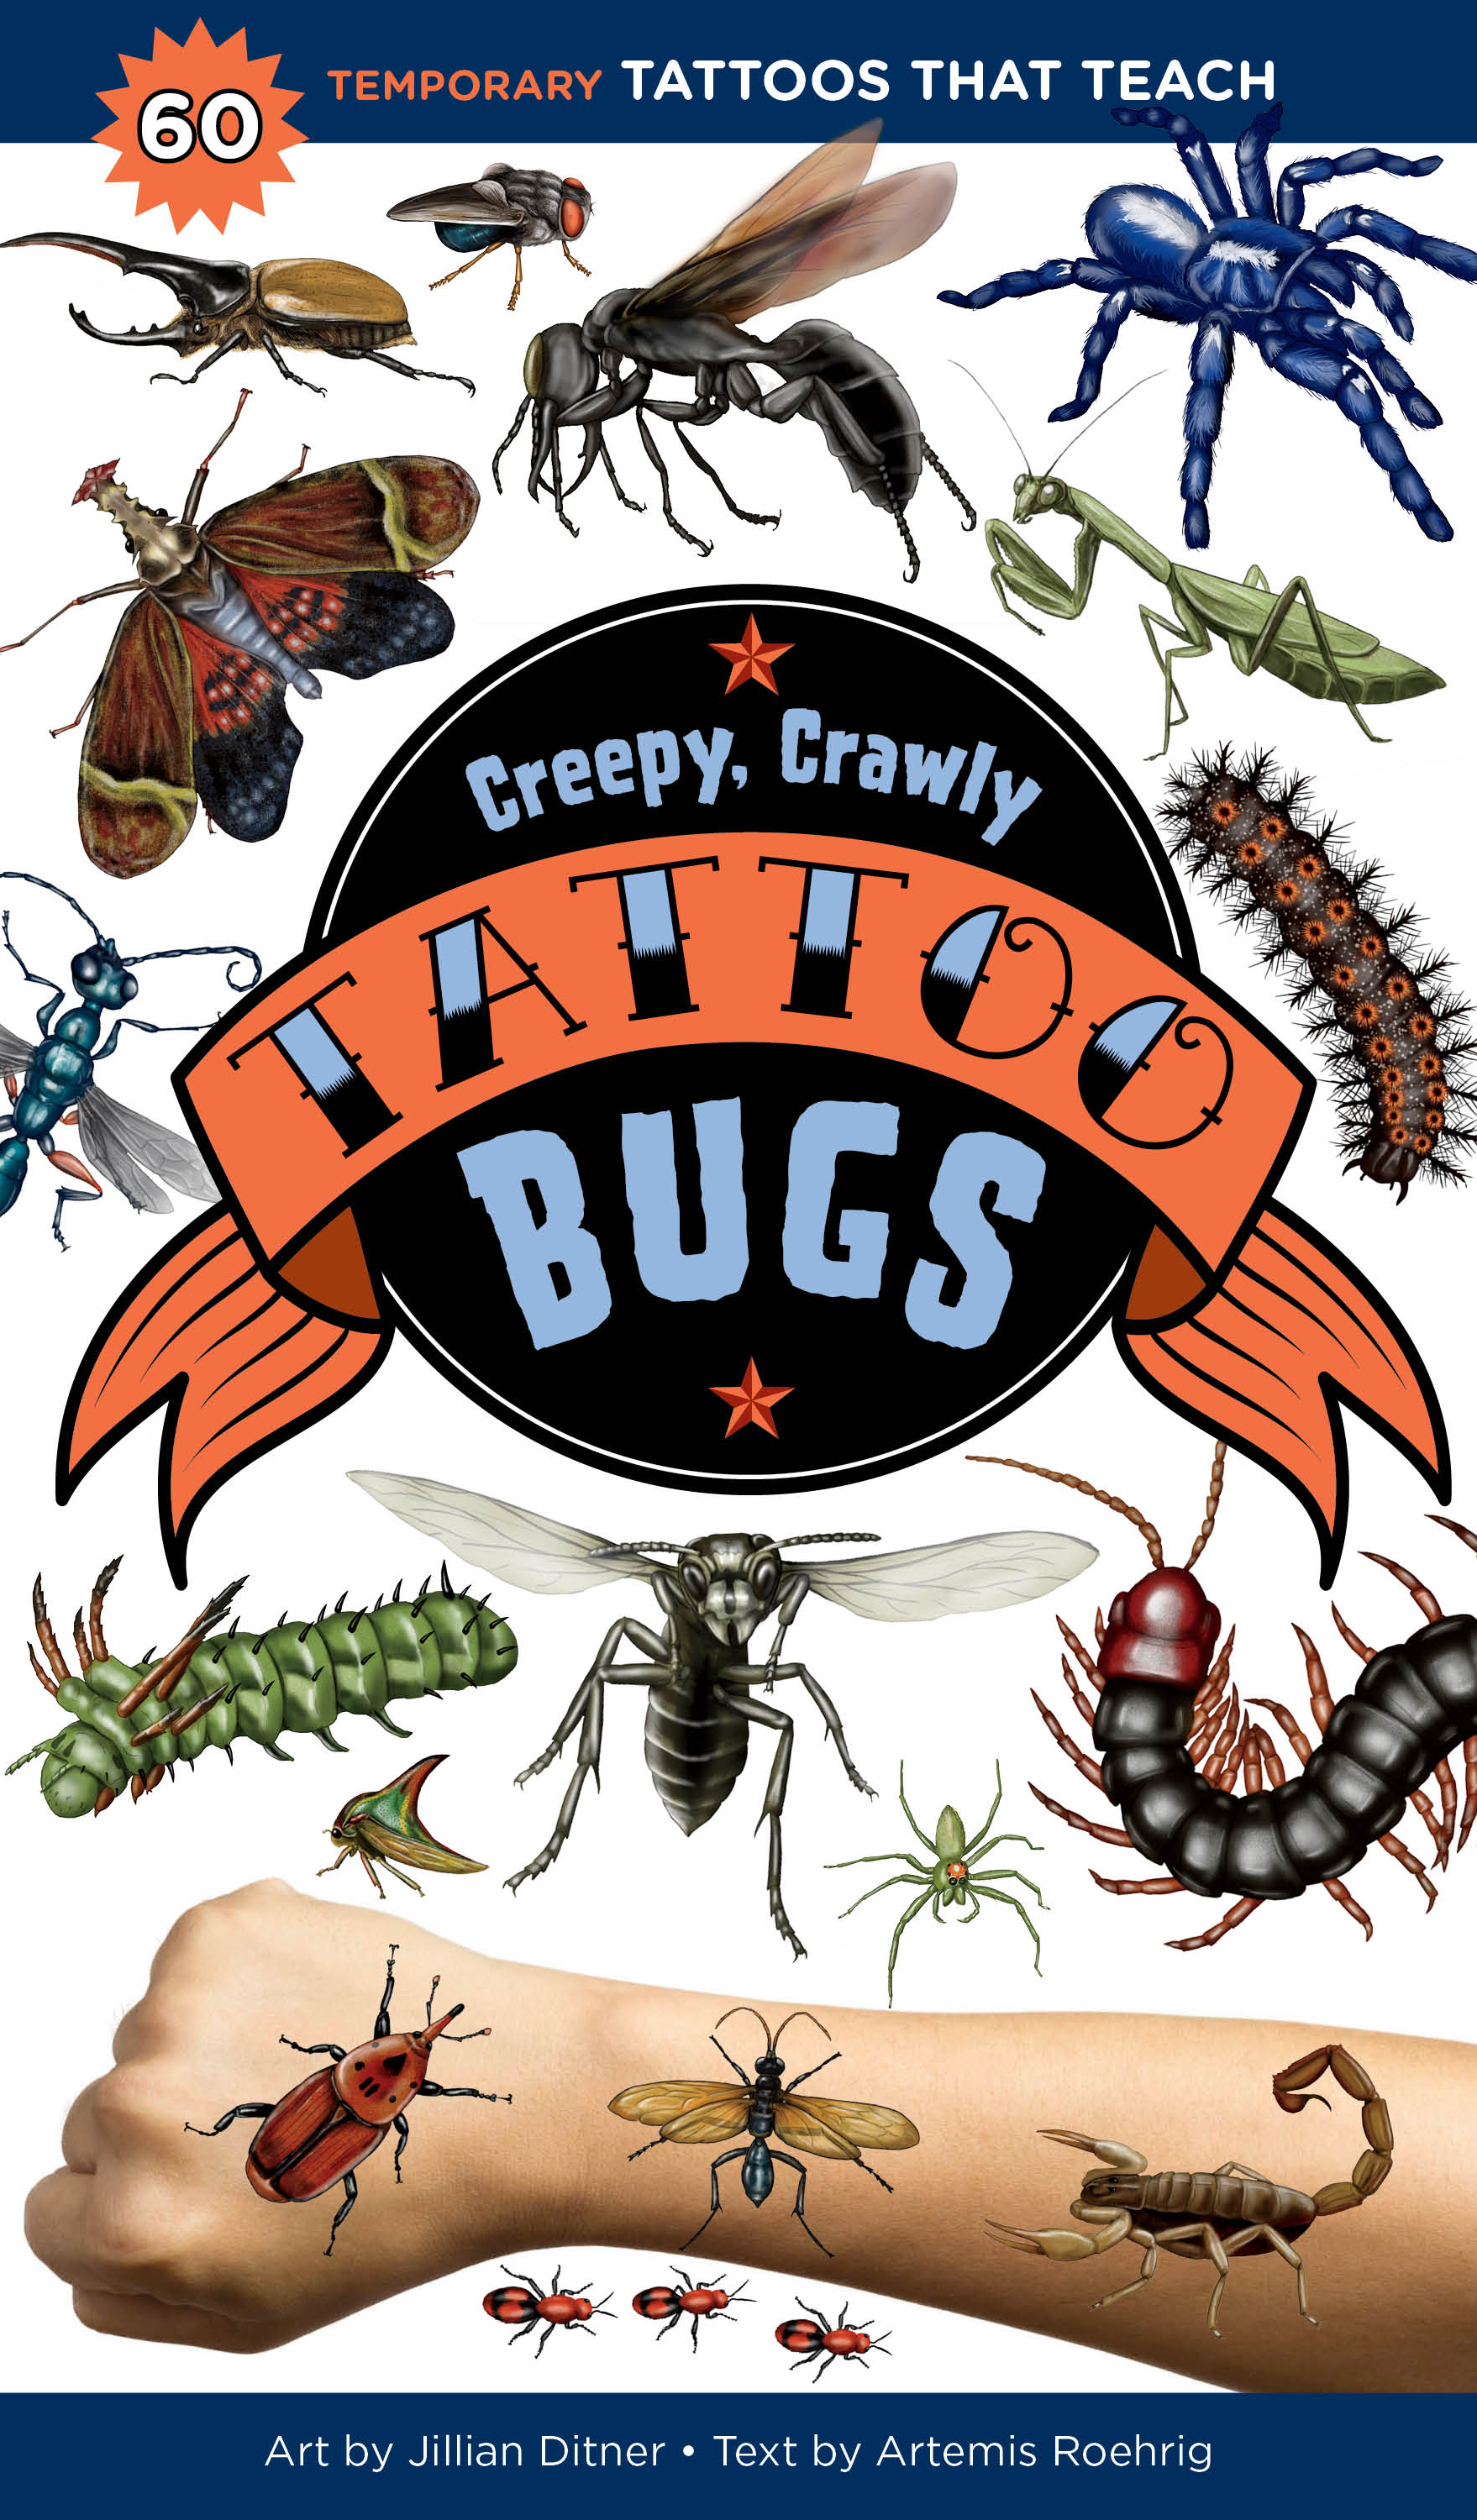 Creepy, Crawly Tattoo Bugs 60 Temporary Tattoos That Teach - Artemis Roehrig